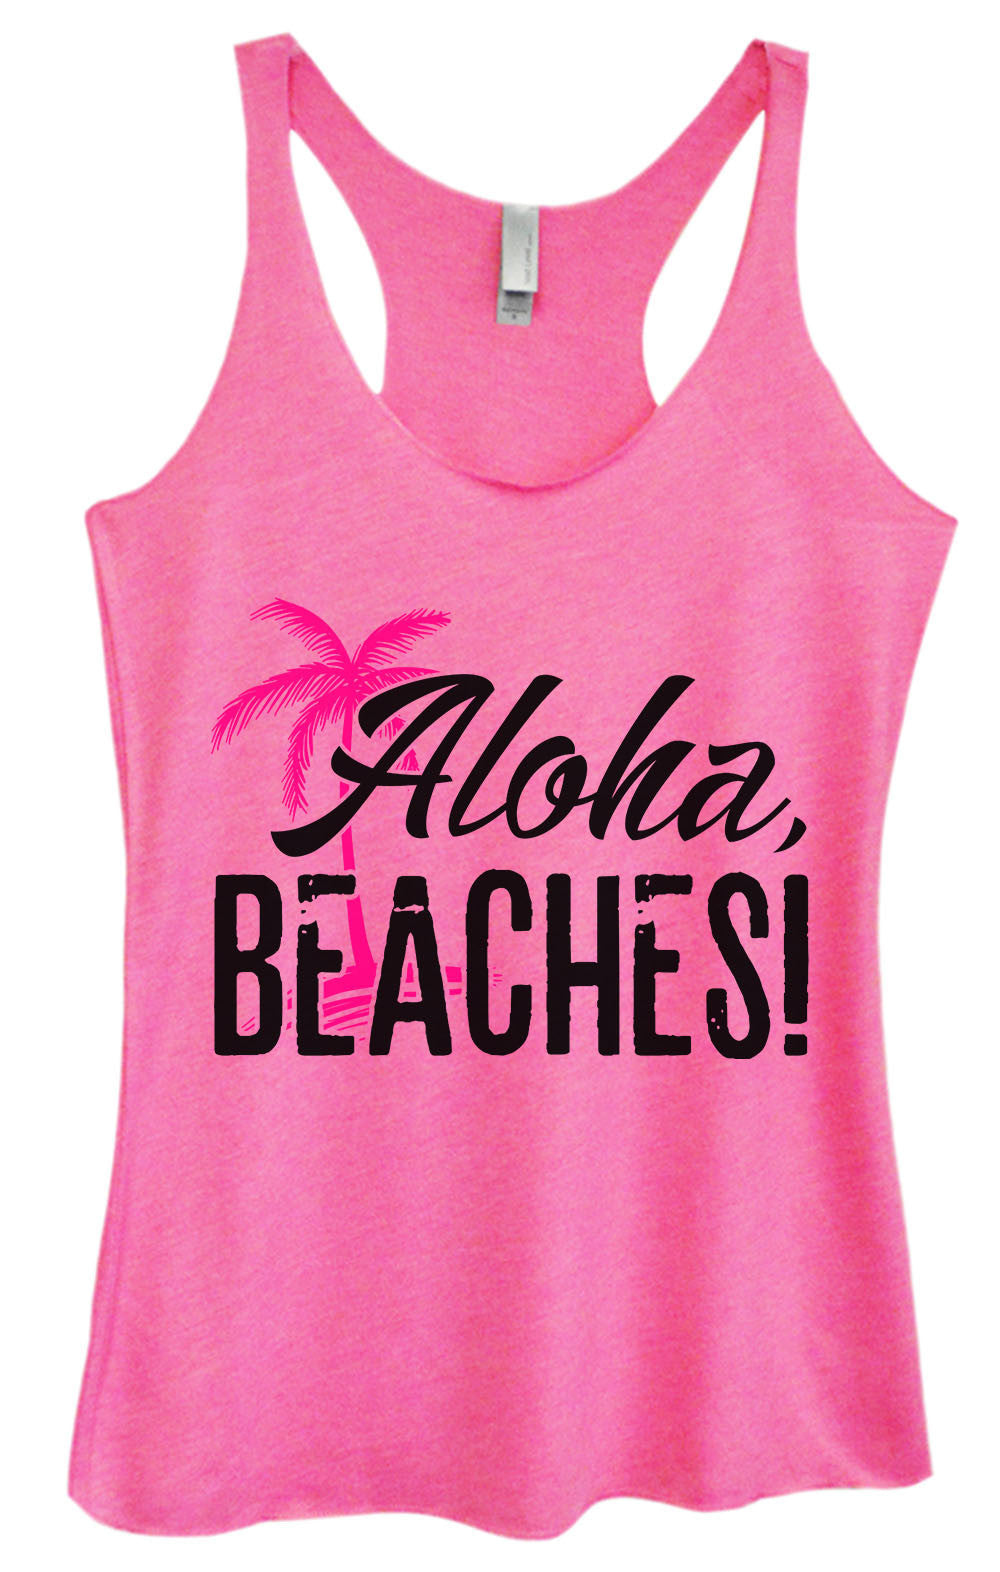 Womens Fashion Triblend Tank Top - Aloha, Beaches! - Tri-1387 - Funny Shirts Tank Tops Burnouts and Triblends  - 4